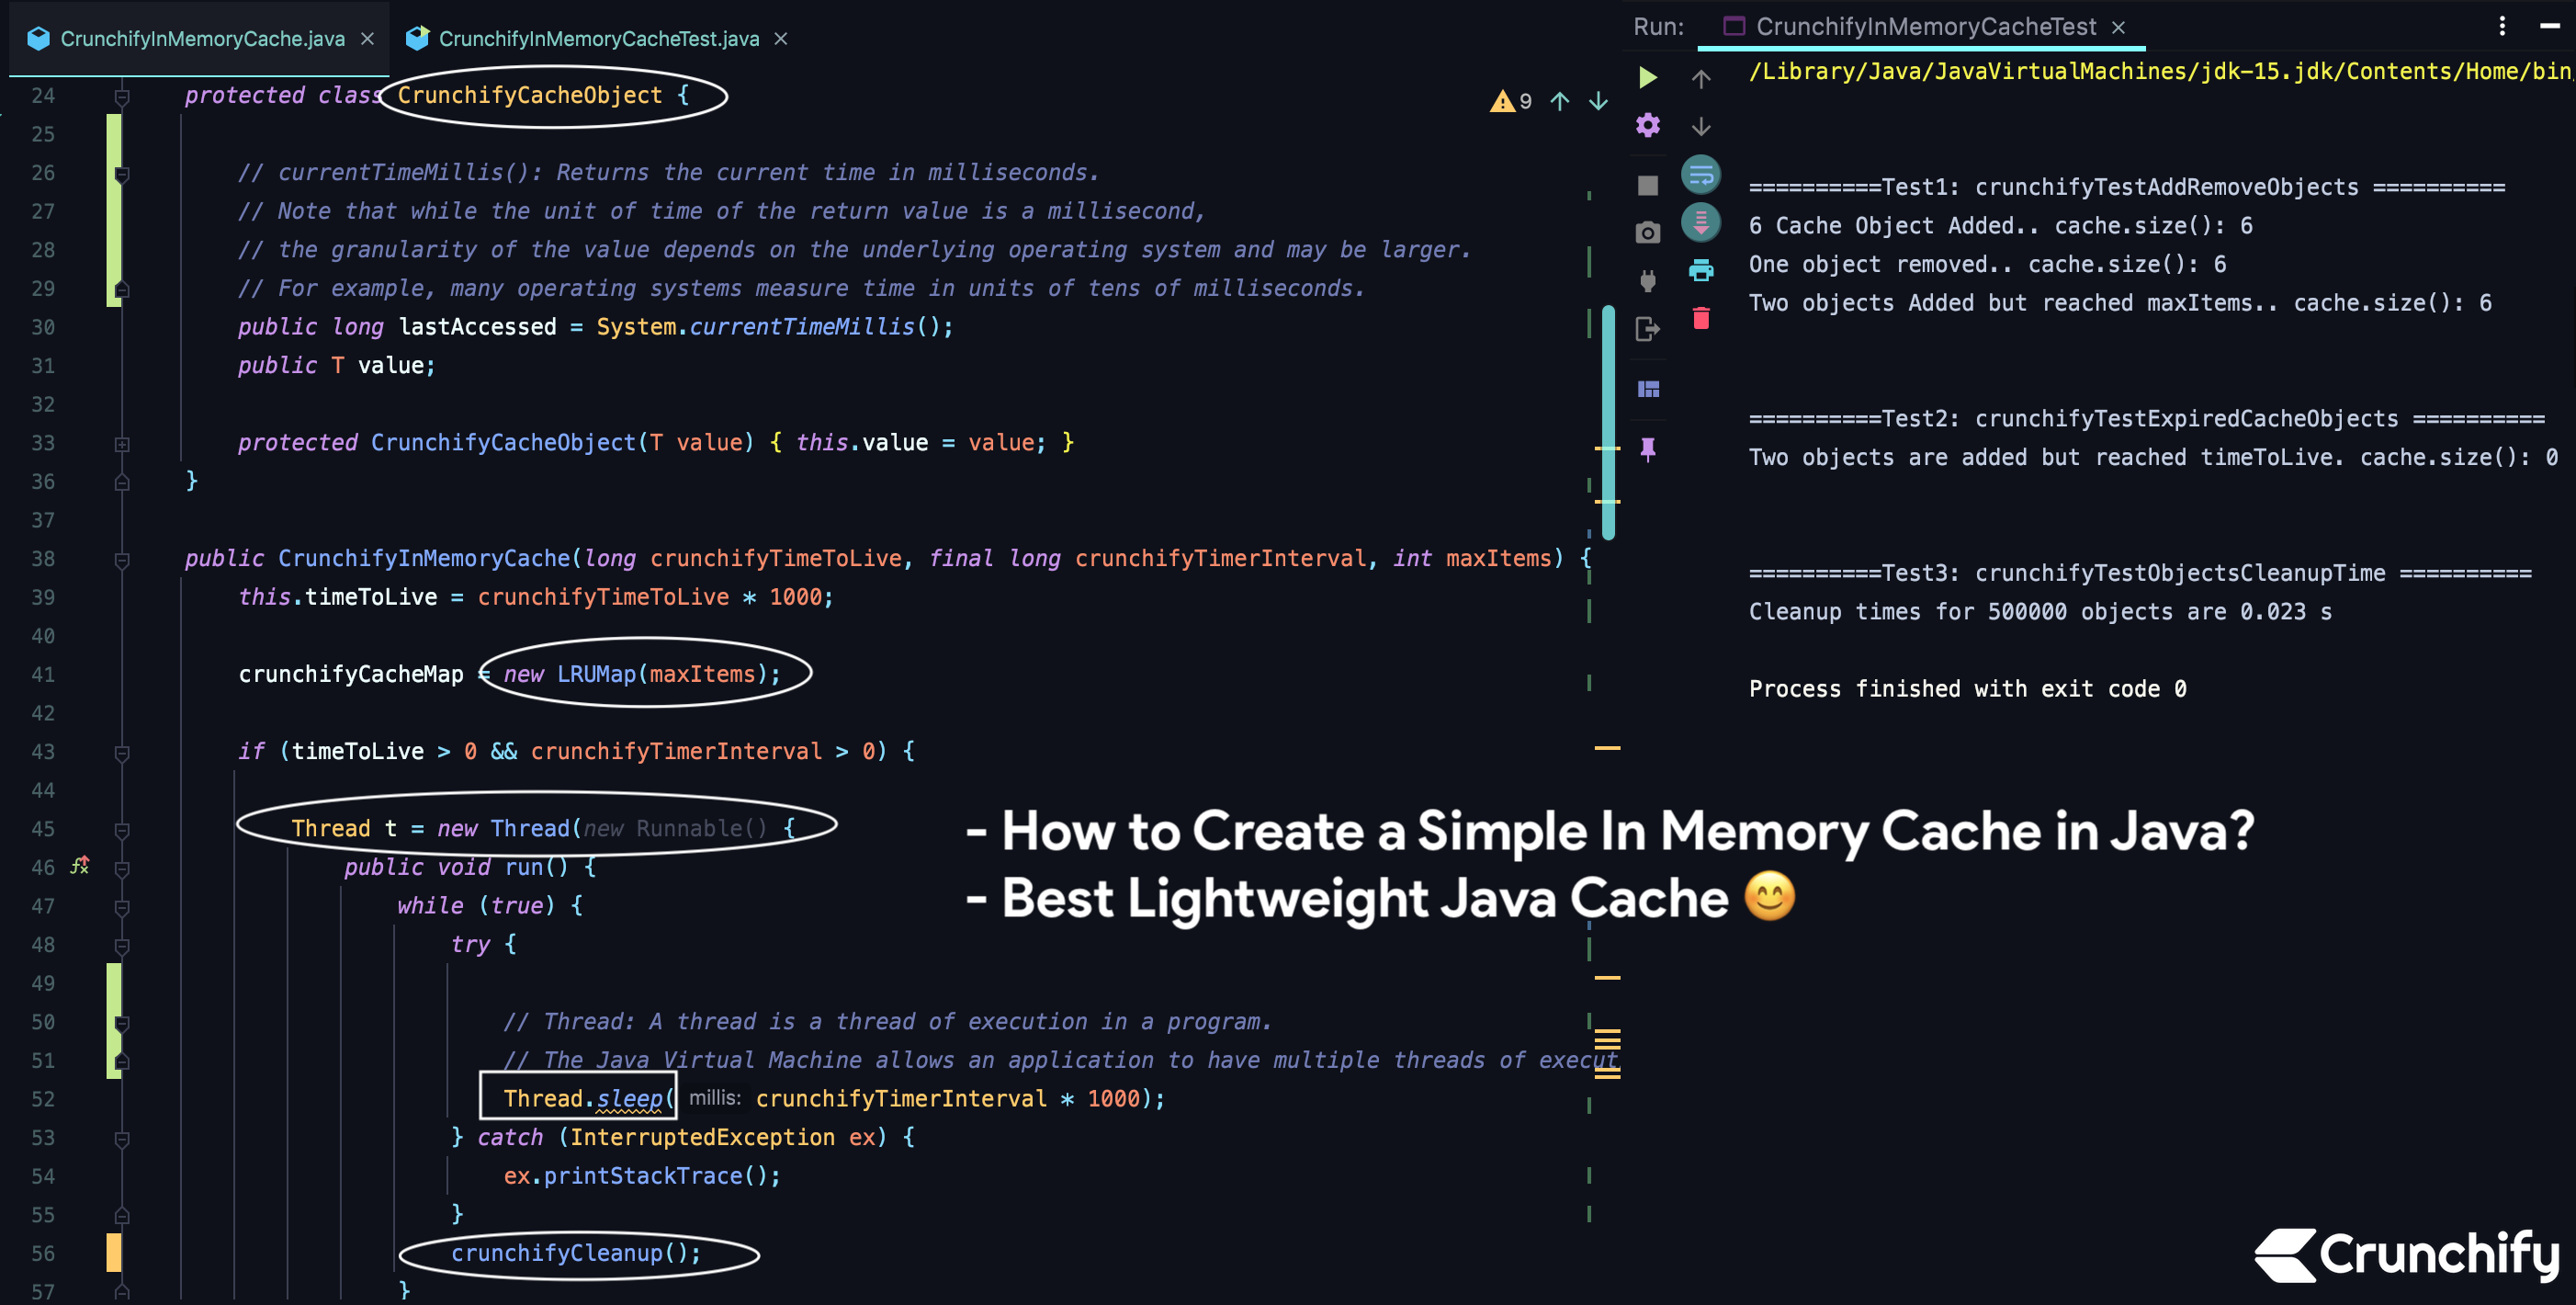 How to Create a Simple In Memory Cache in Java Best Lightweight ...